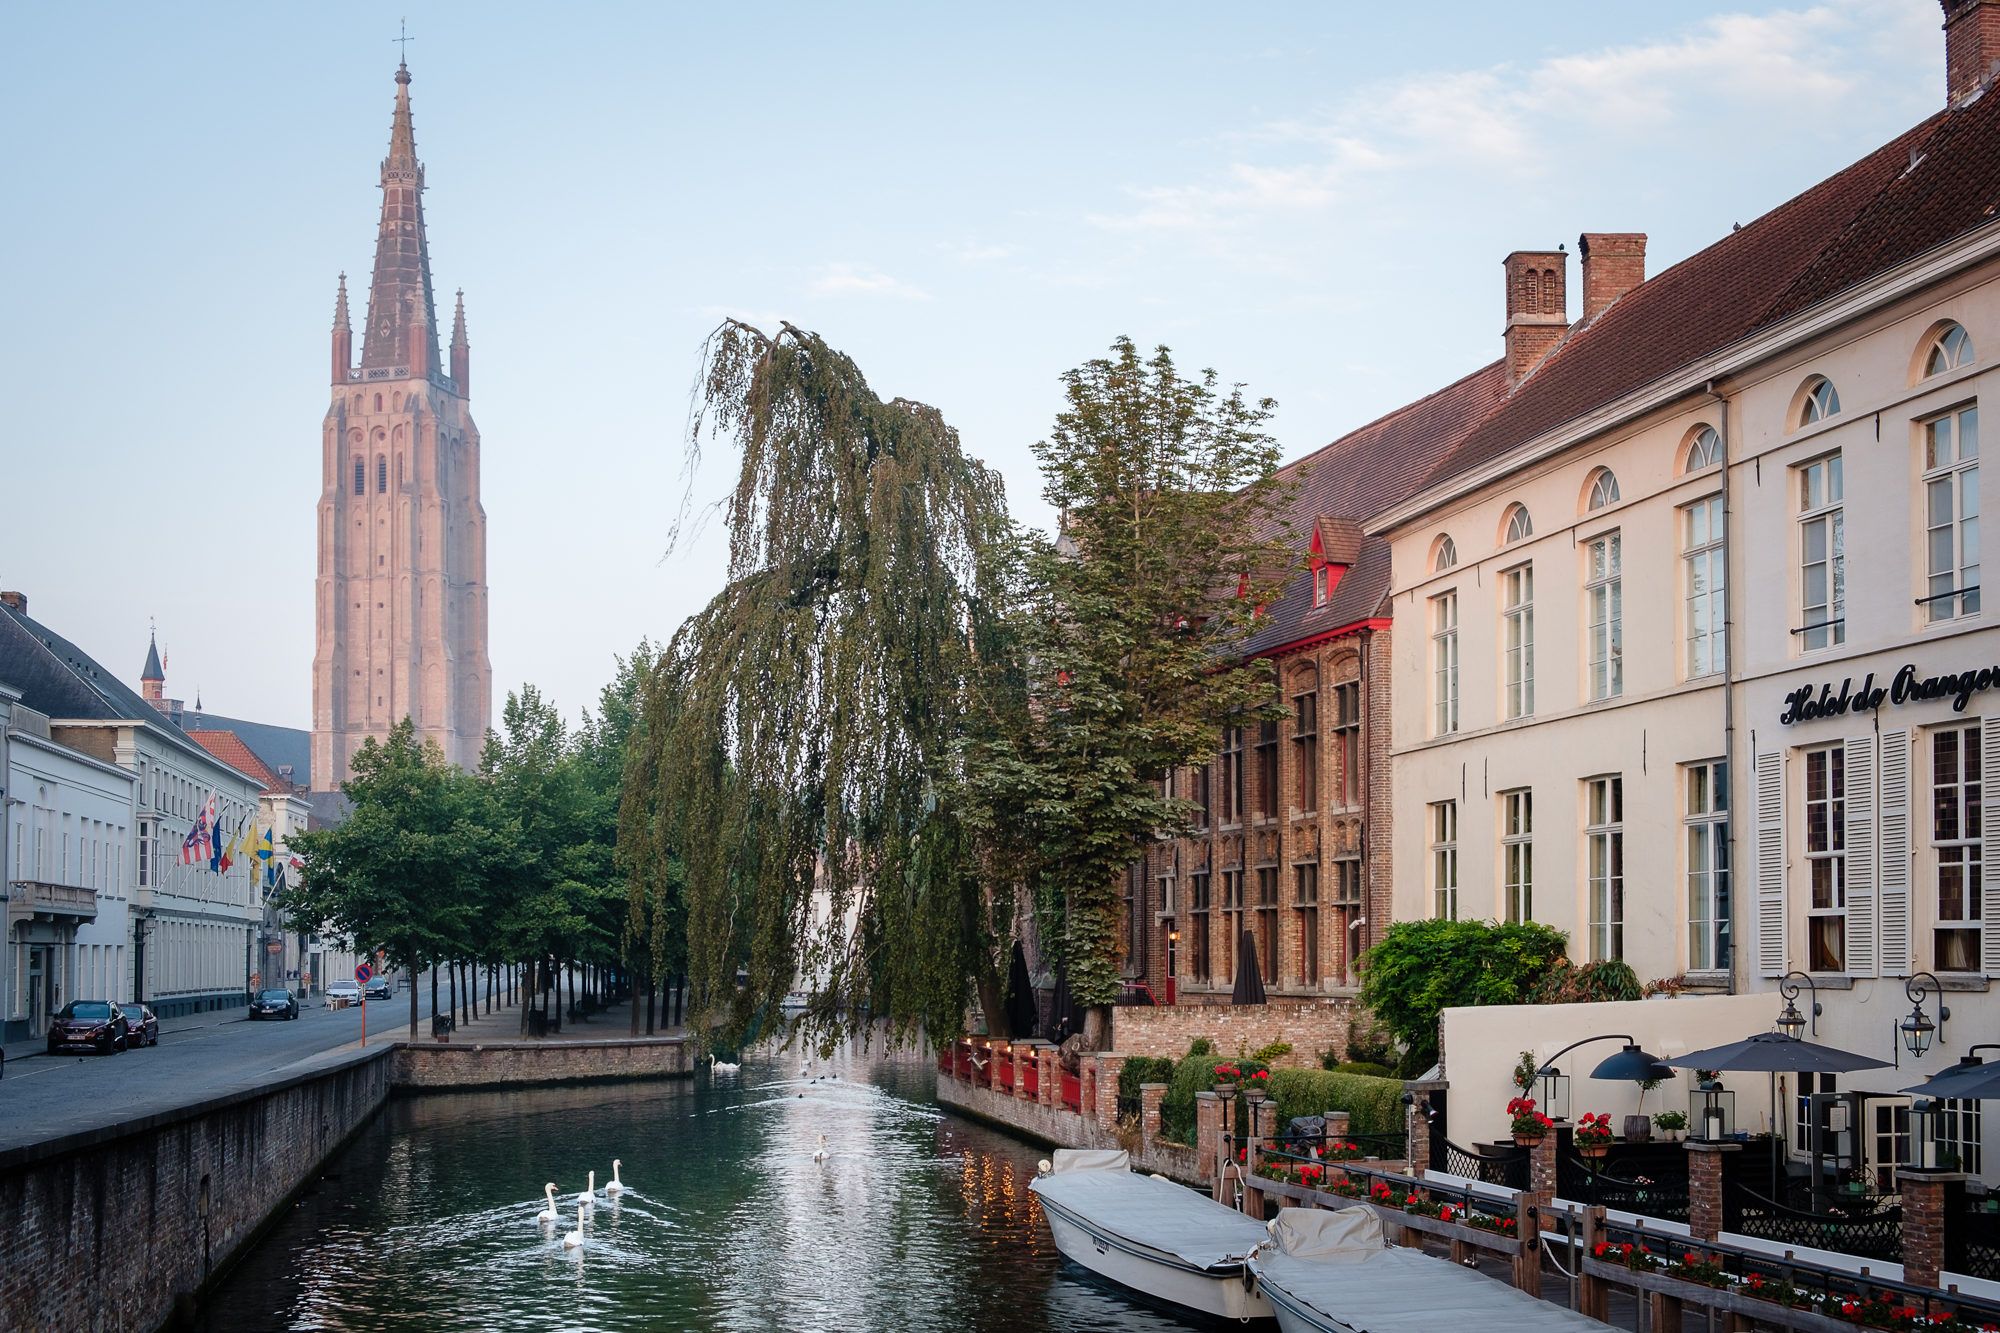 A photo of the Dijver Canal and the Church of our Lady in Bruges, Belgium taken by Trevor Sherwin